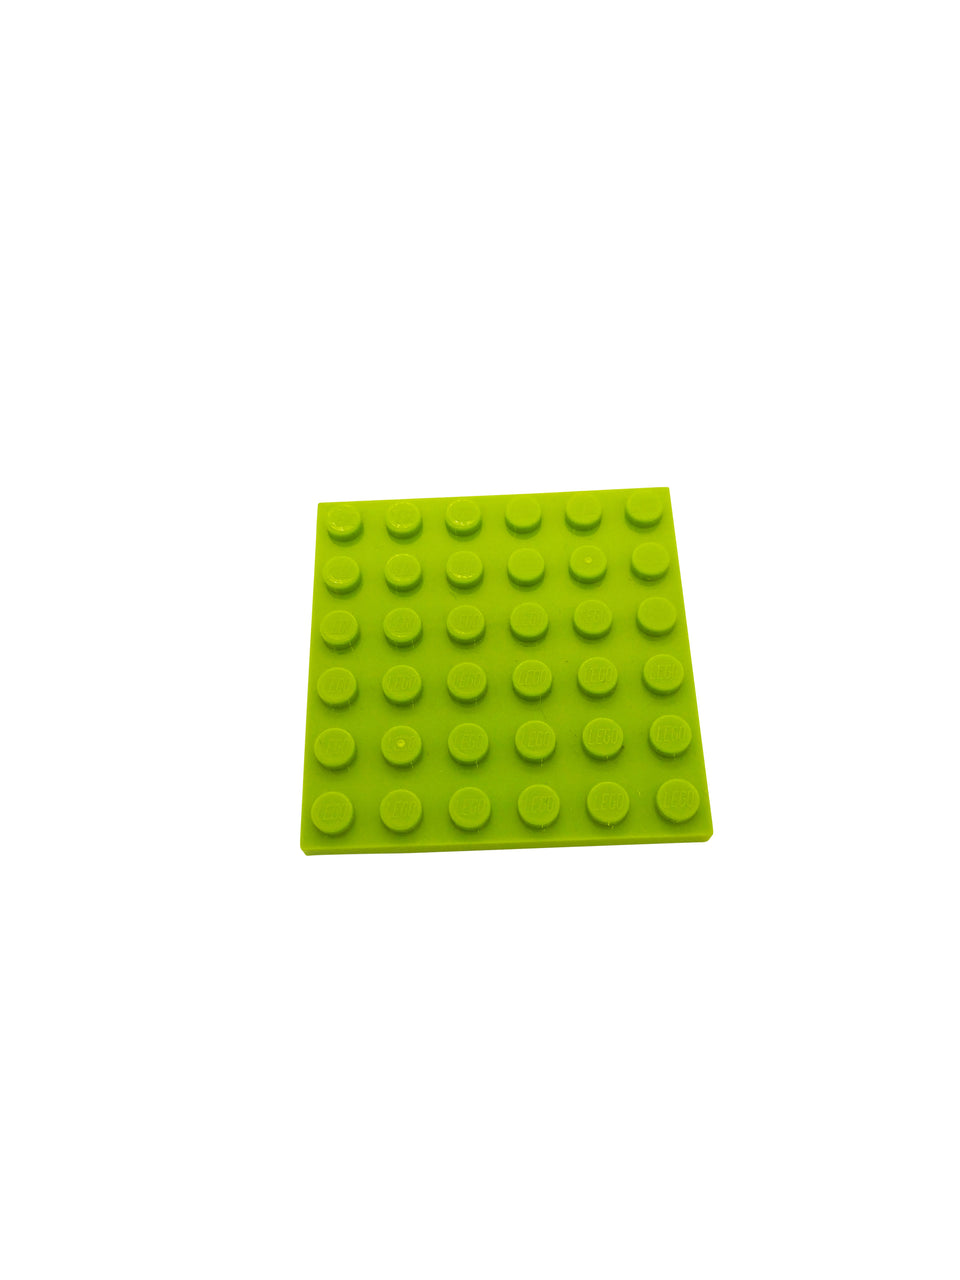 Light green 6 * 6 - Lego surface